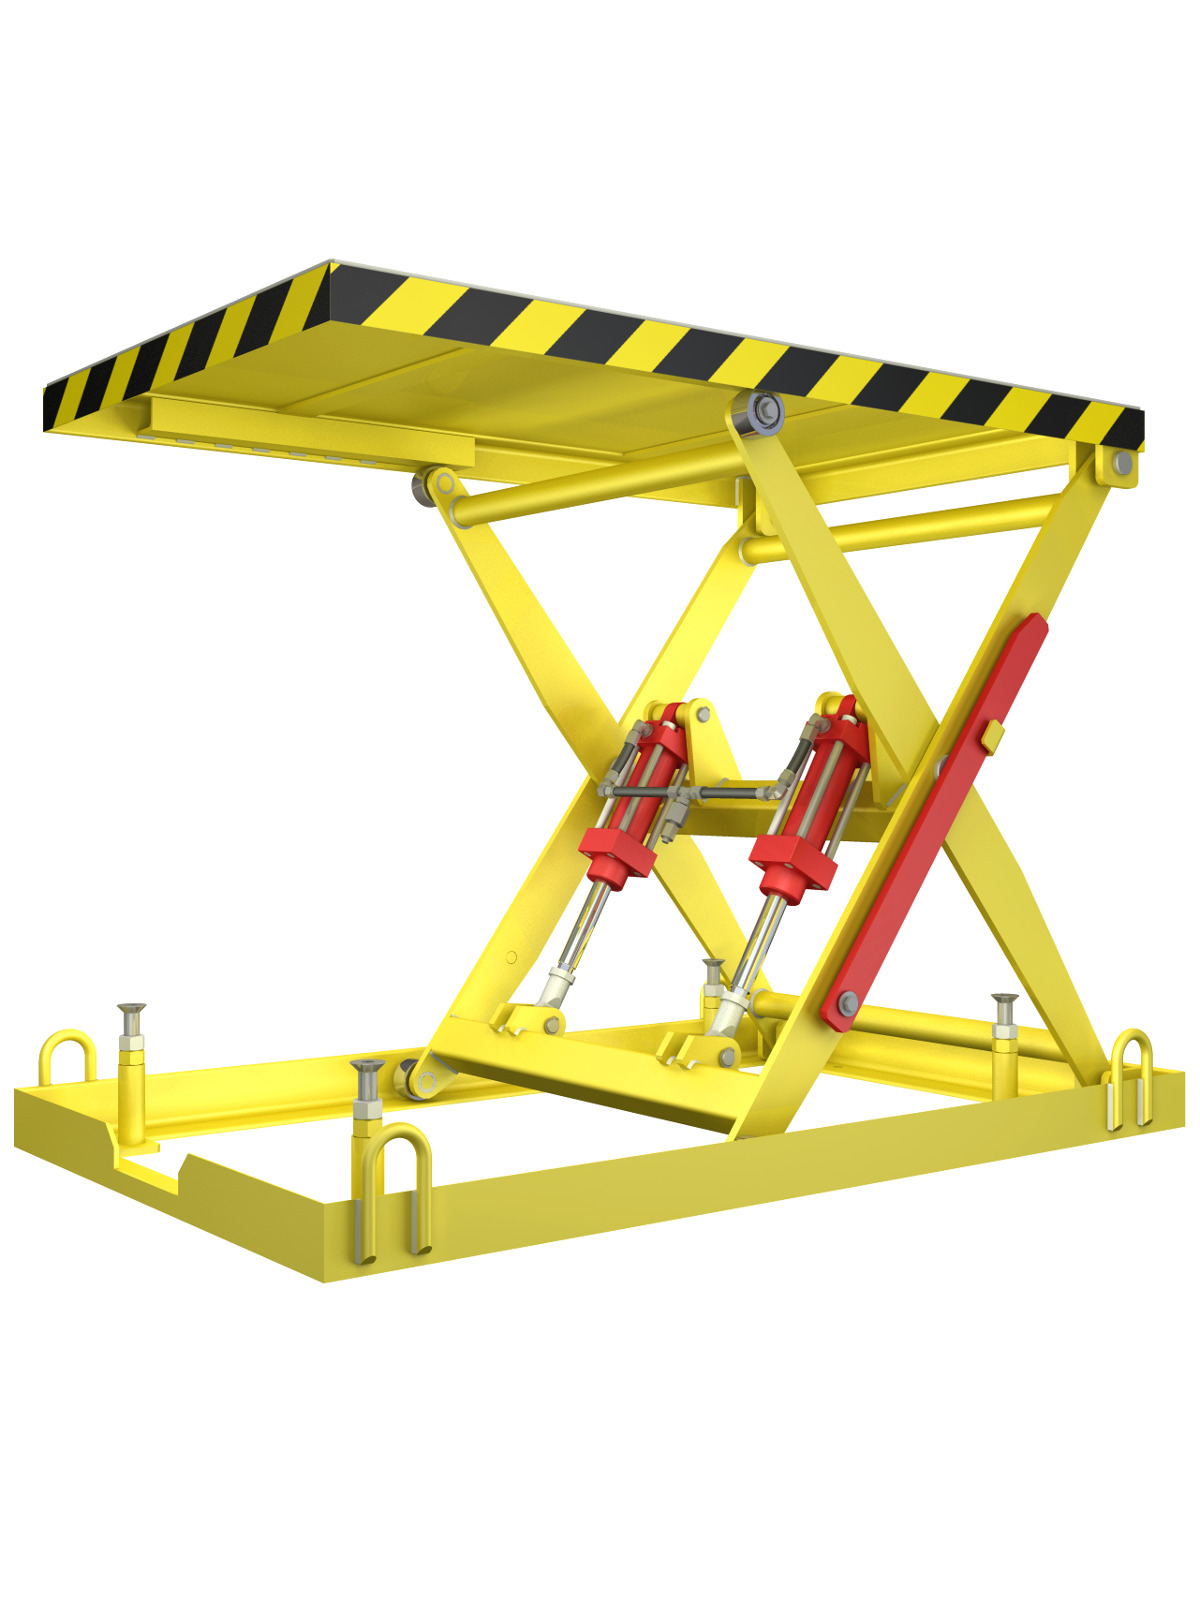 Scissor Lifting Table Design Calculations Pdf